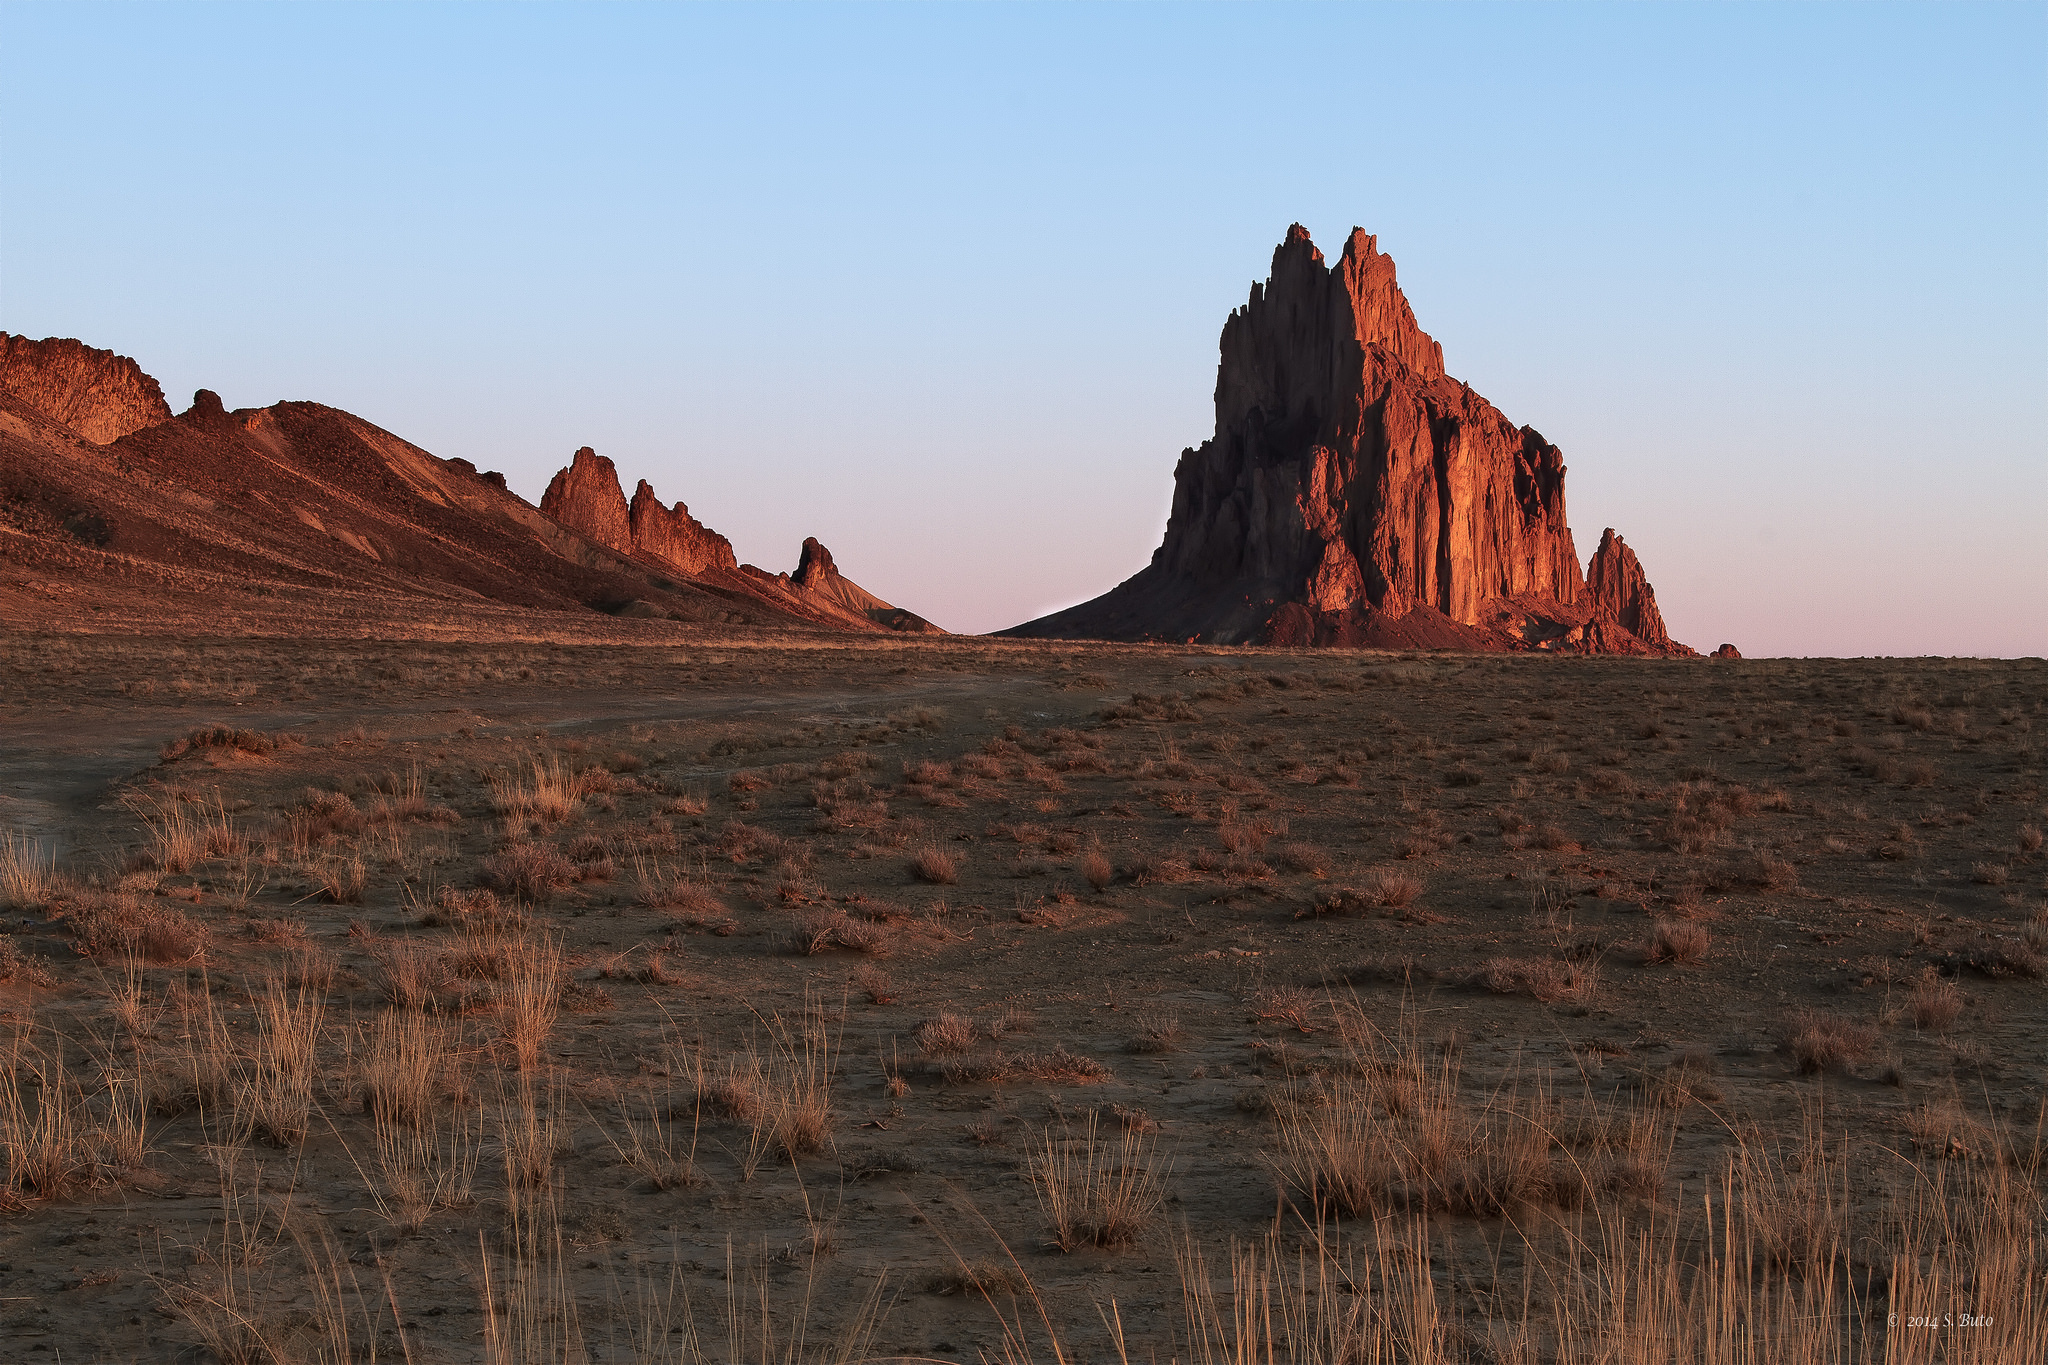 The volcanic plug, named Shiprock, from which the nearby town gets its name.